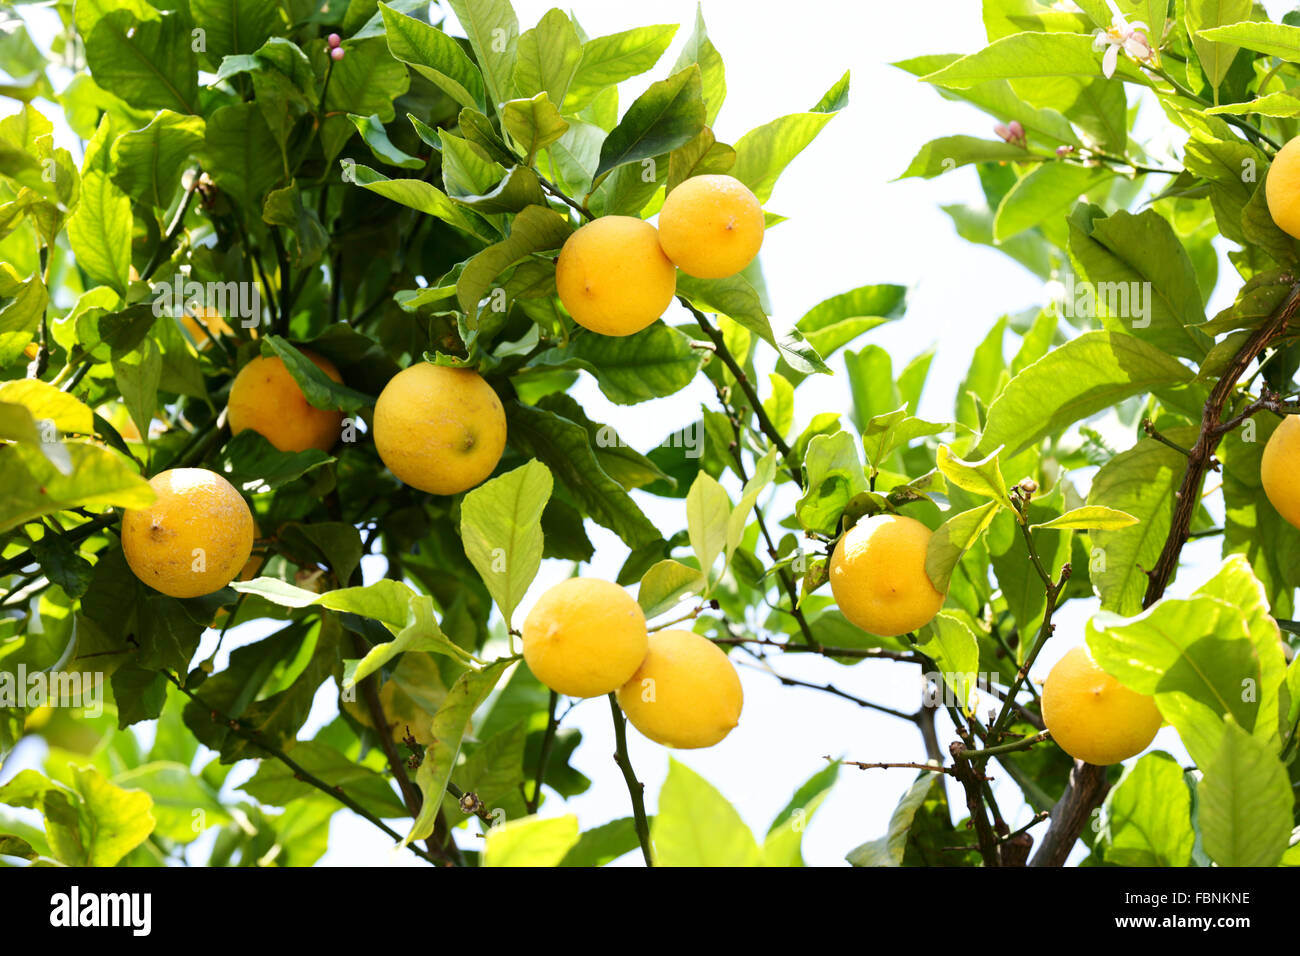 ripe lemons growing on a lemon tree in the south of france stock photo 93289546 alamy. Black Bedroom Furniture Sets. Home Design Ideas